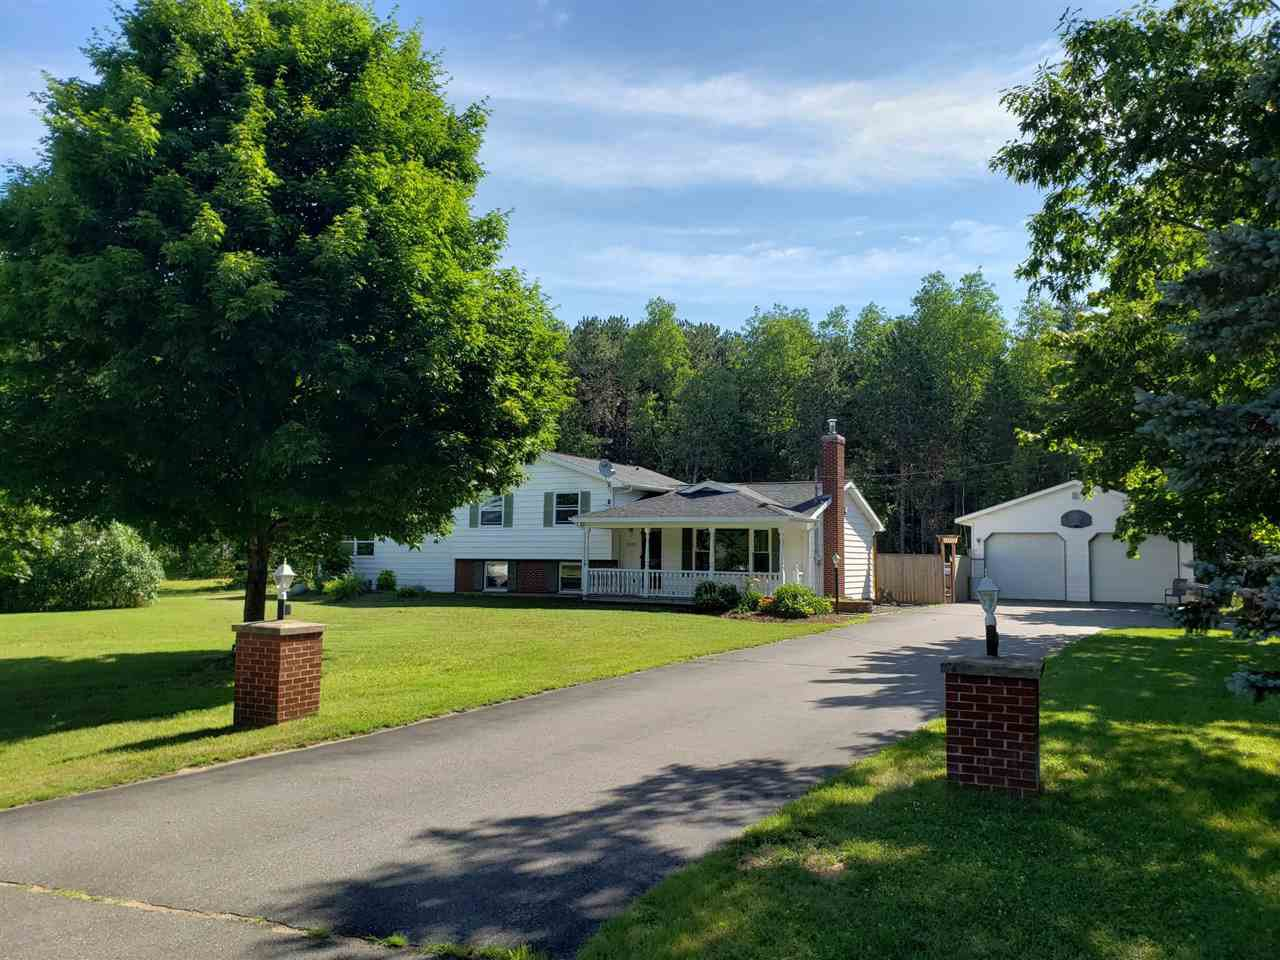 Main Photo: 1830 Gerald Drive in Coldbrook: 404-Kings County Residential for sale (Annapolis Valley)  : MLS®# 202012958